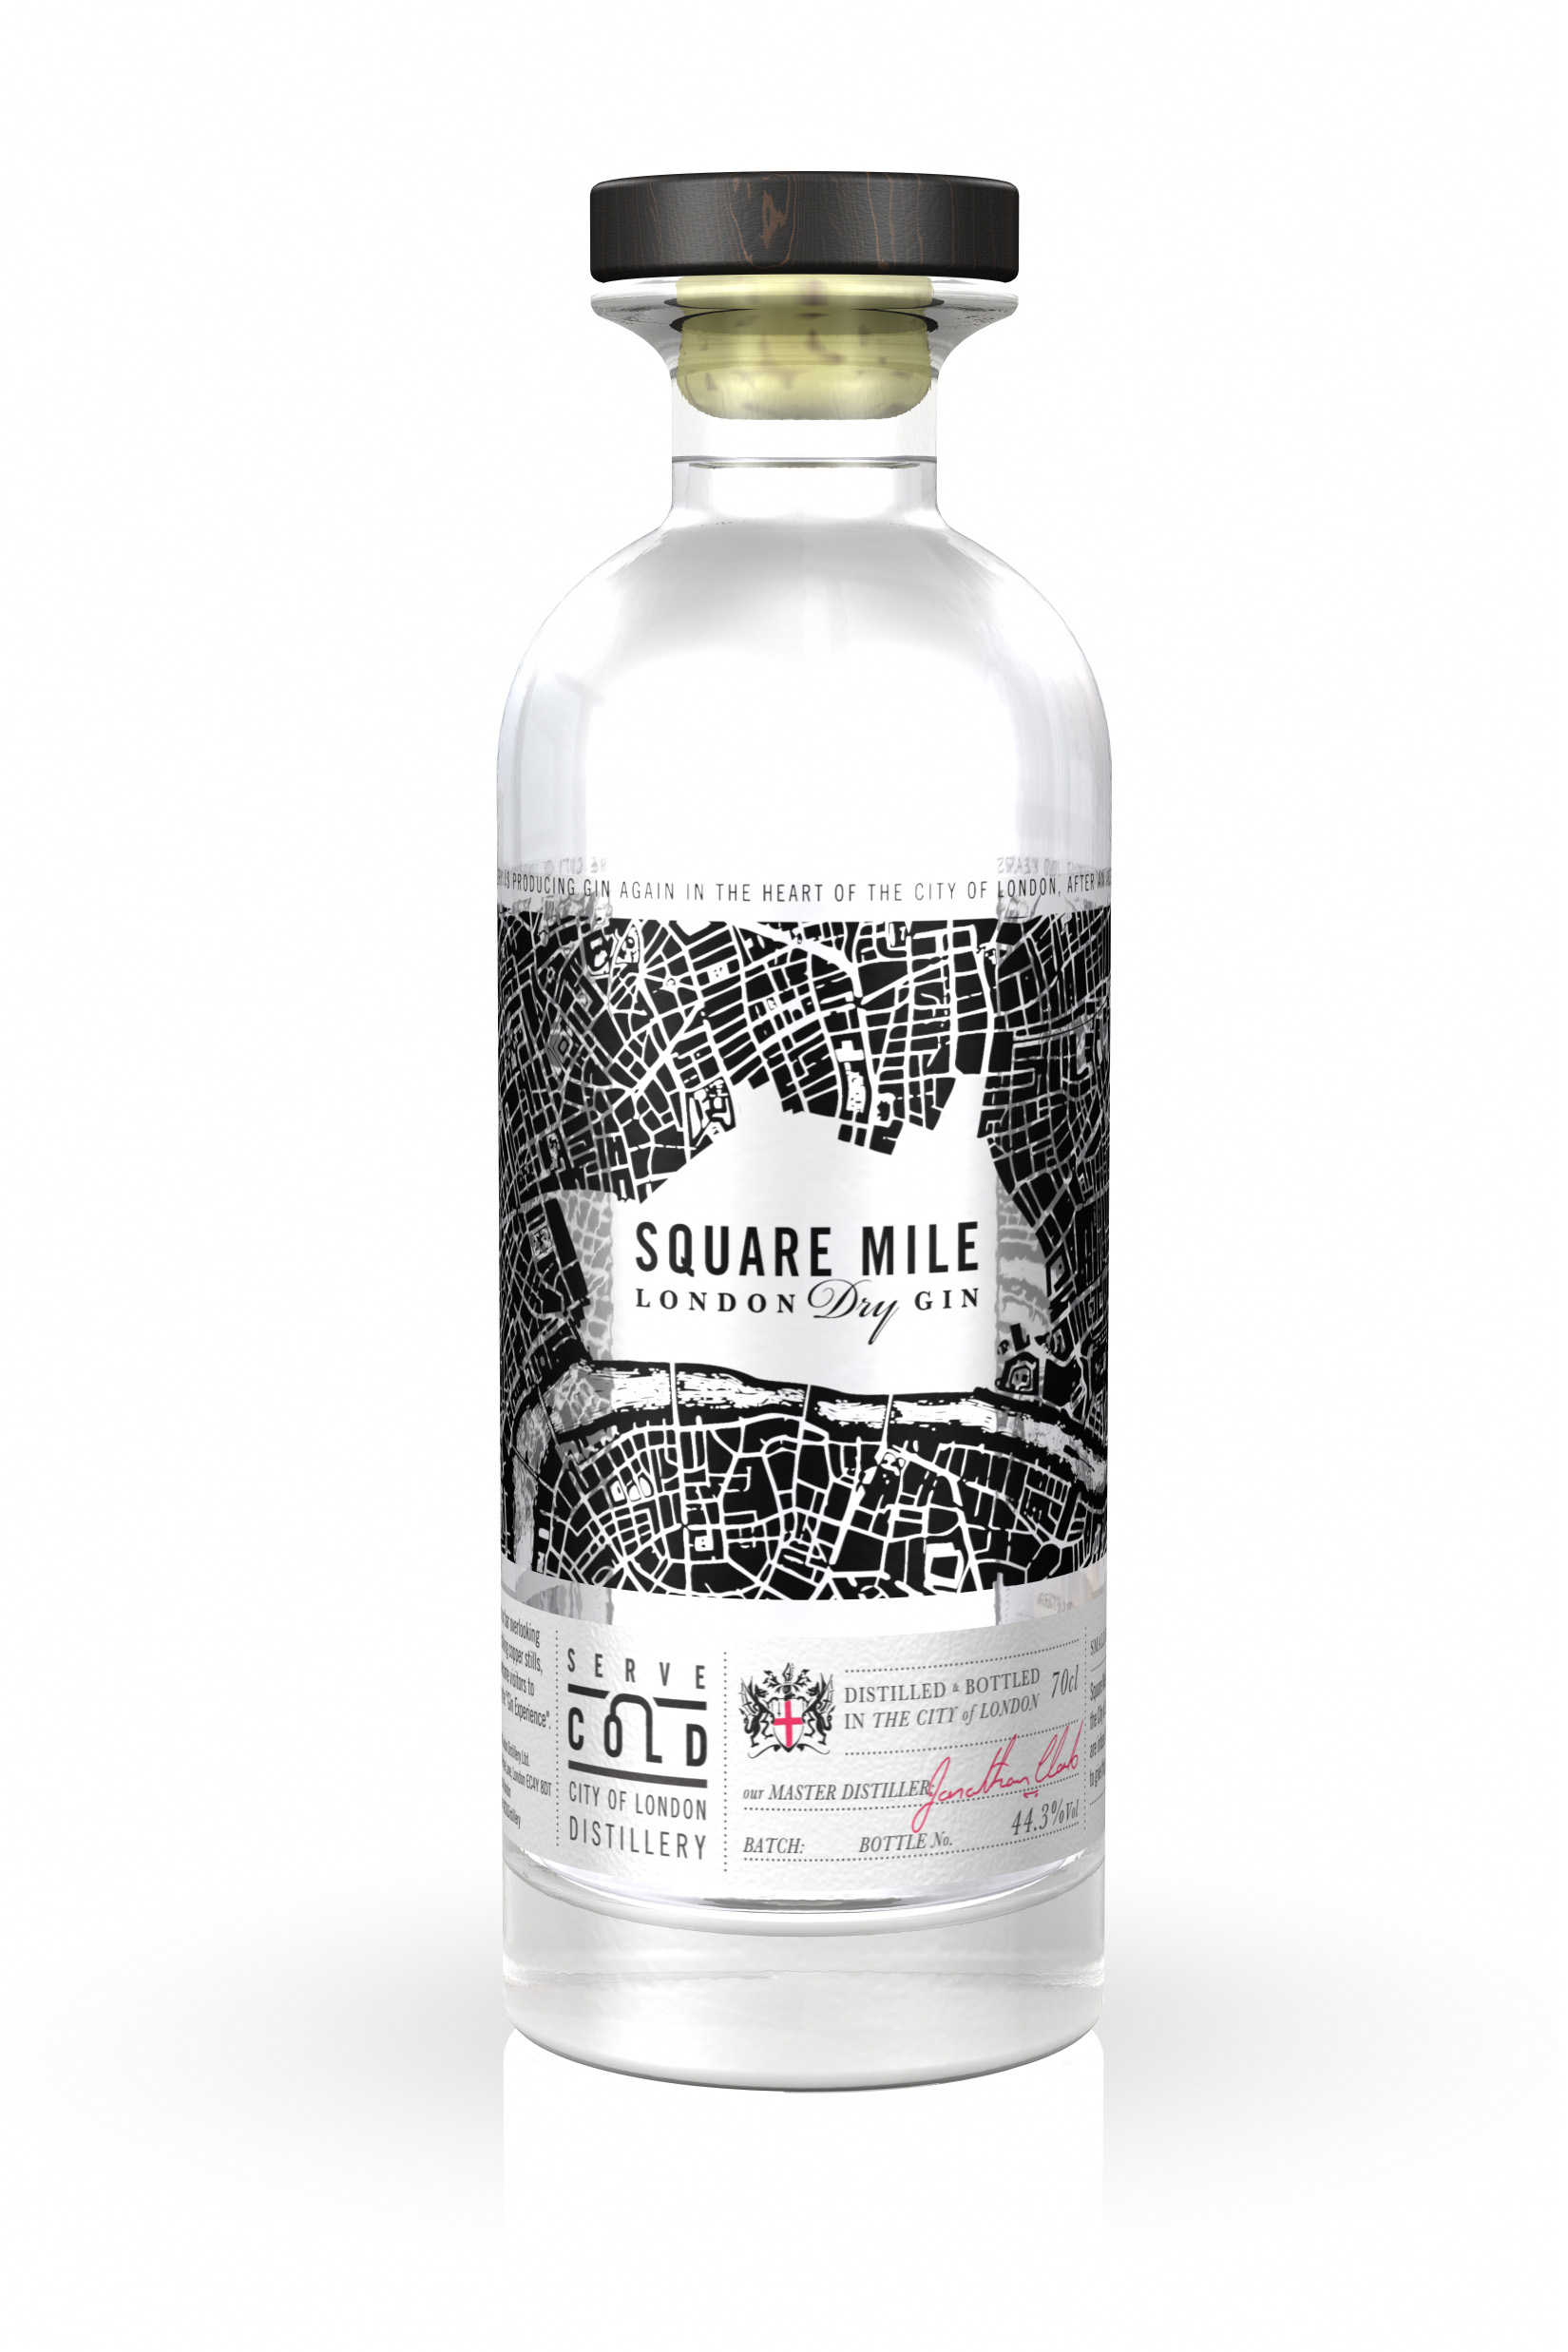 Photo: Square Mile London Gin